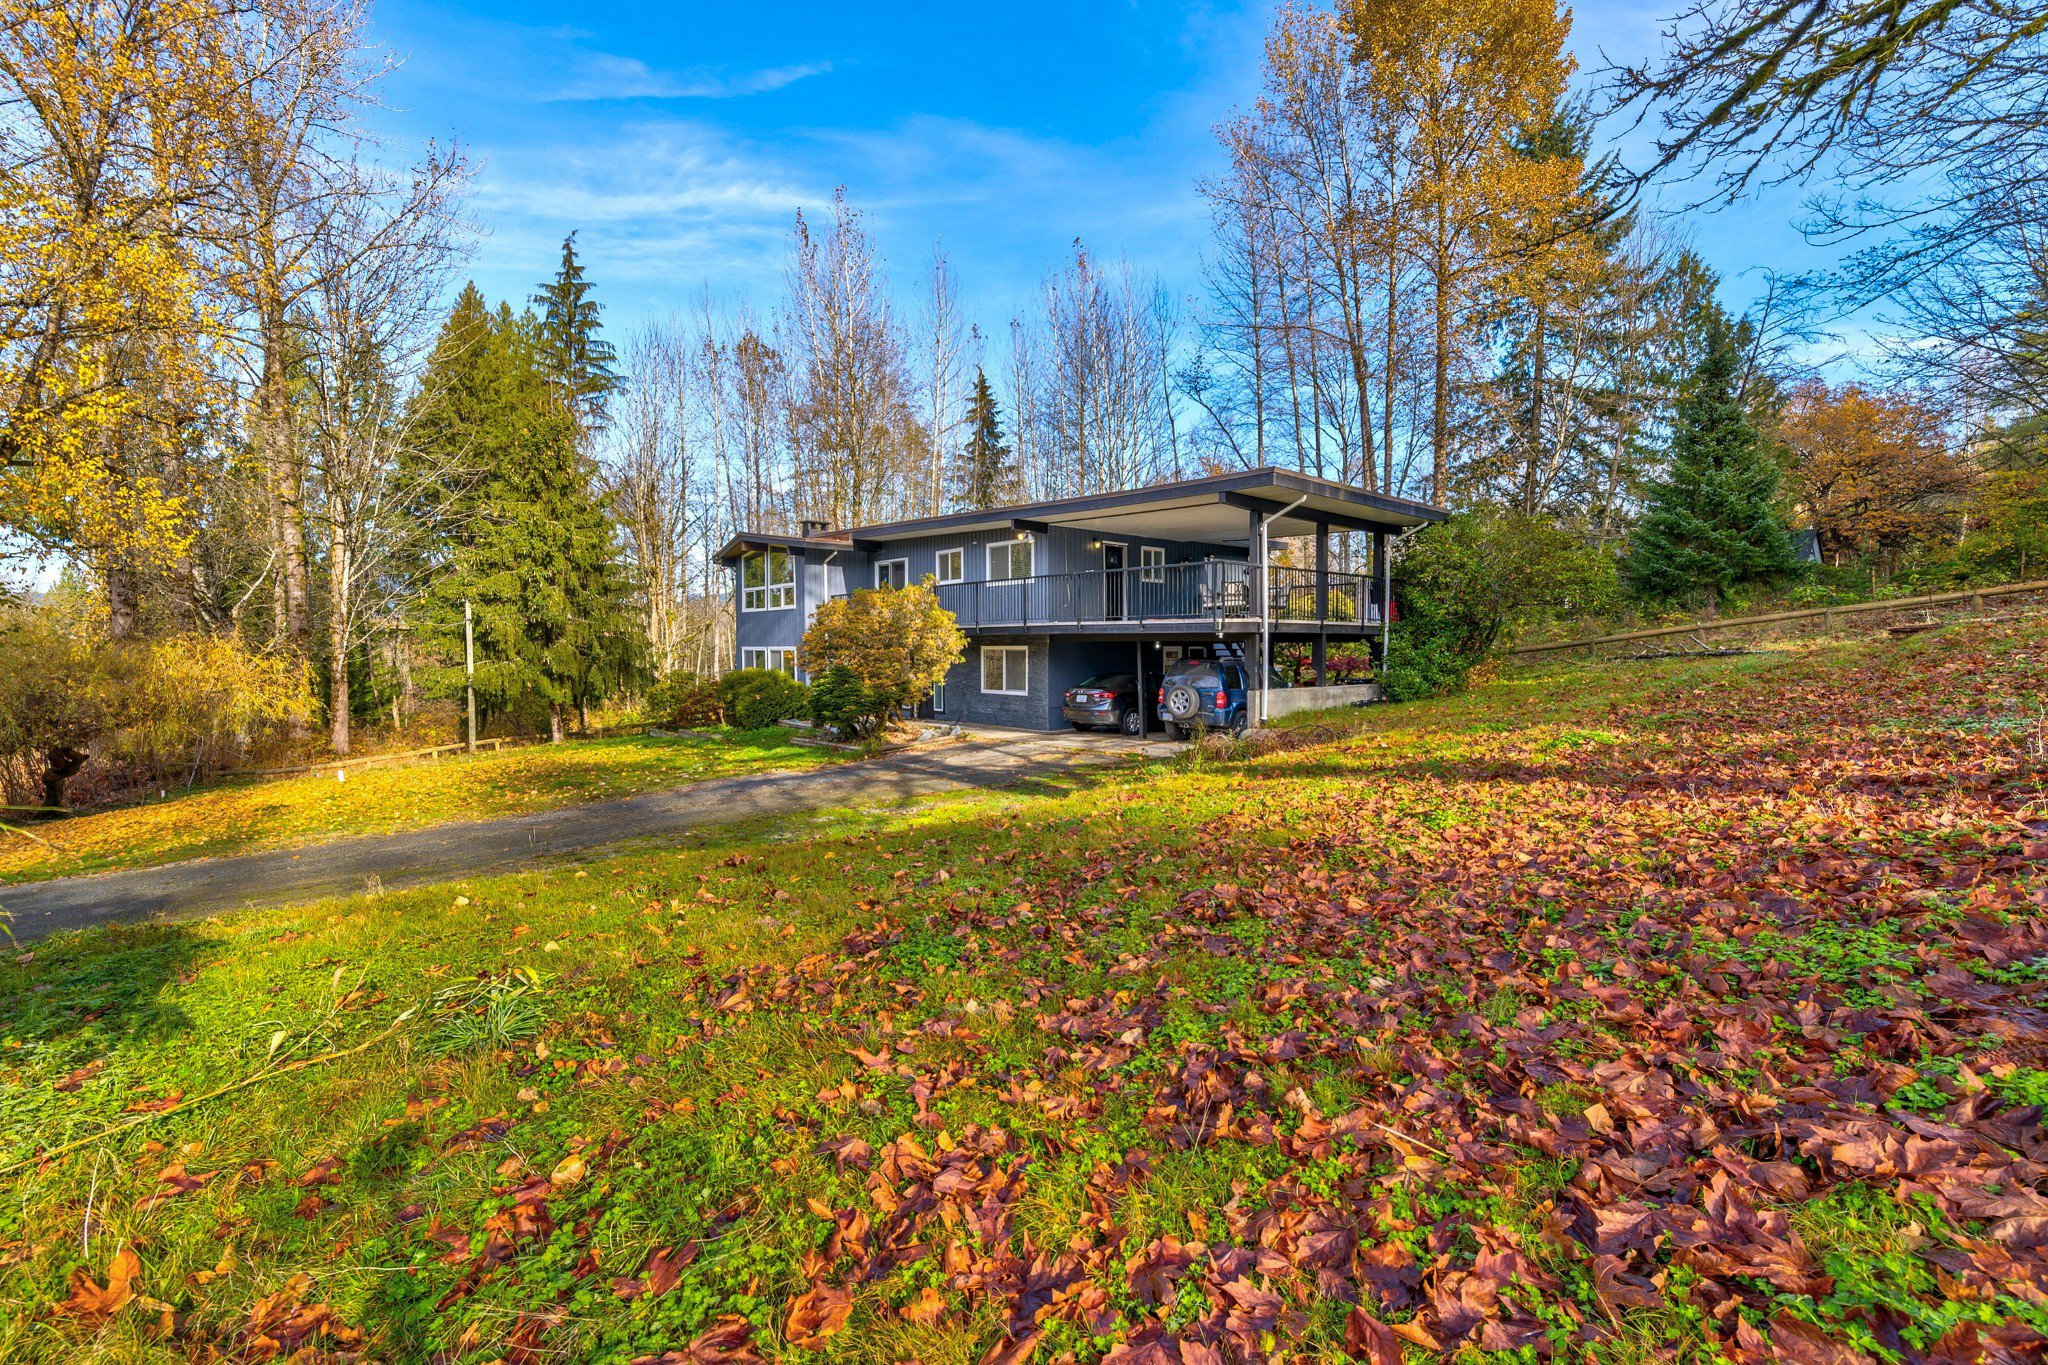 Photo 3: Photos: 11208 252 Street in Maple Ridge: Thornhill MR House for sale : MLS®# R2437236